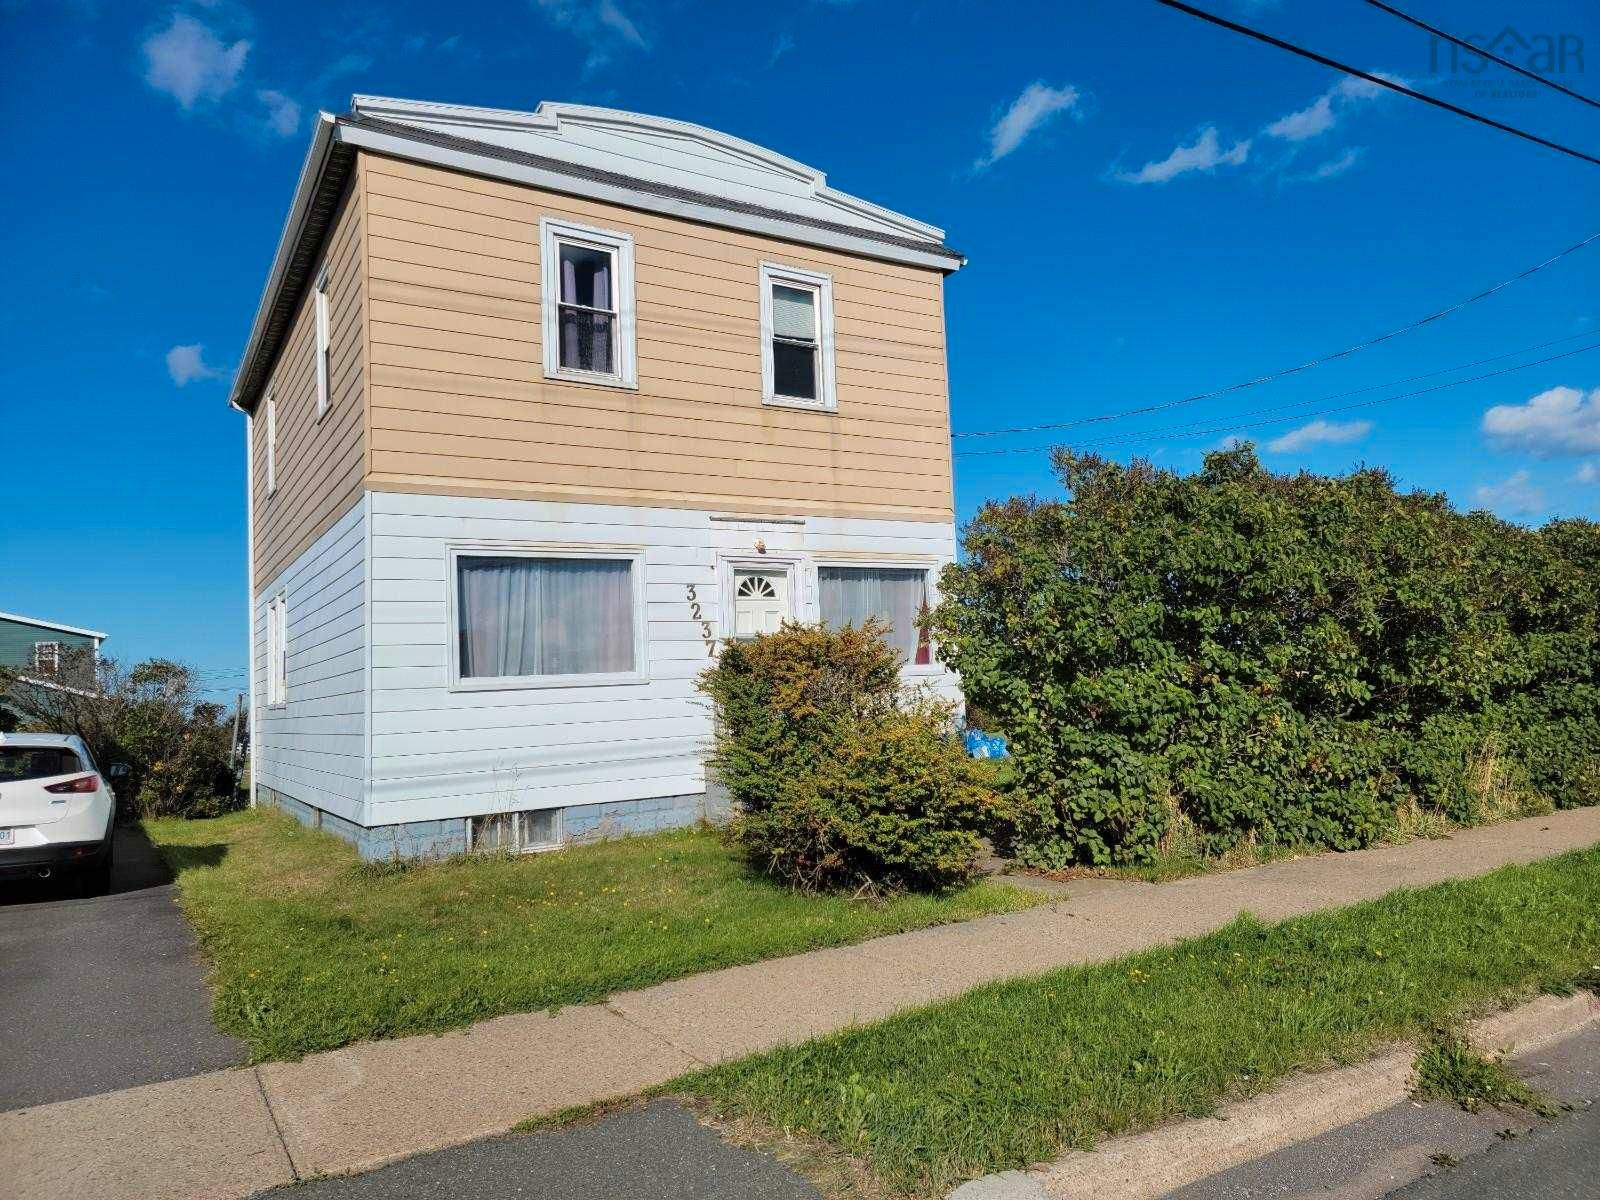 Main Photo: 3237 Hinchey Avenue in New Waterford: 204-New Waterford Residential for sale (Cape Breton)  : MLS®# 202124968